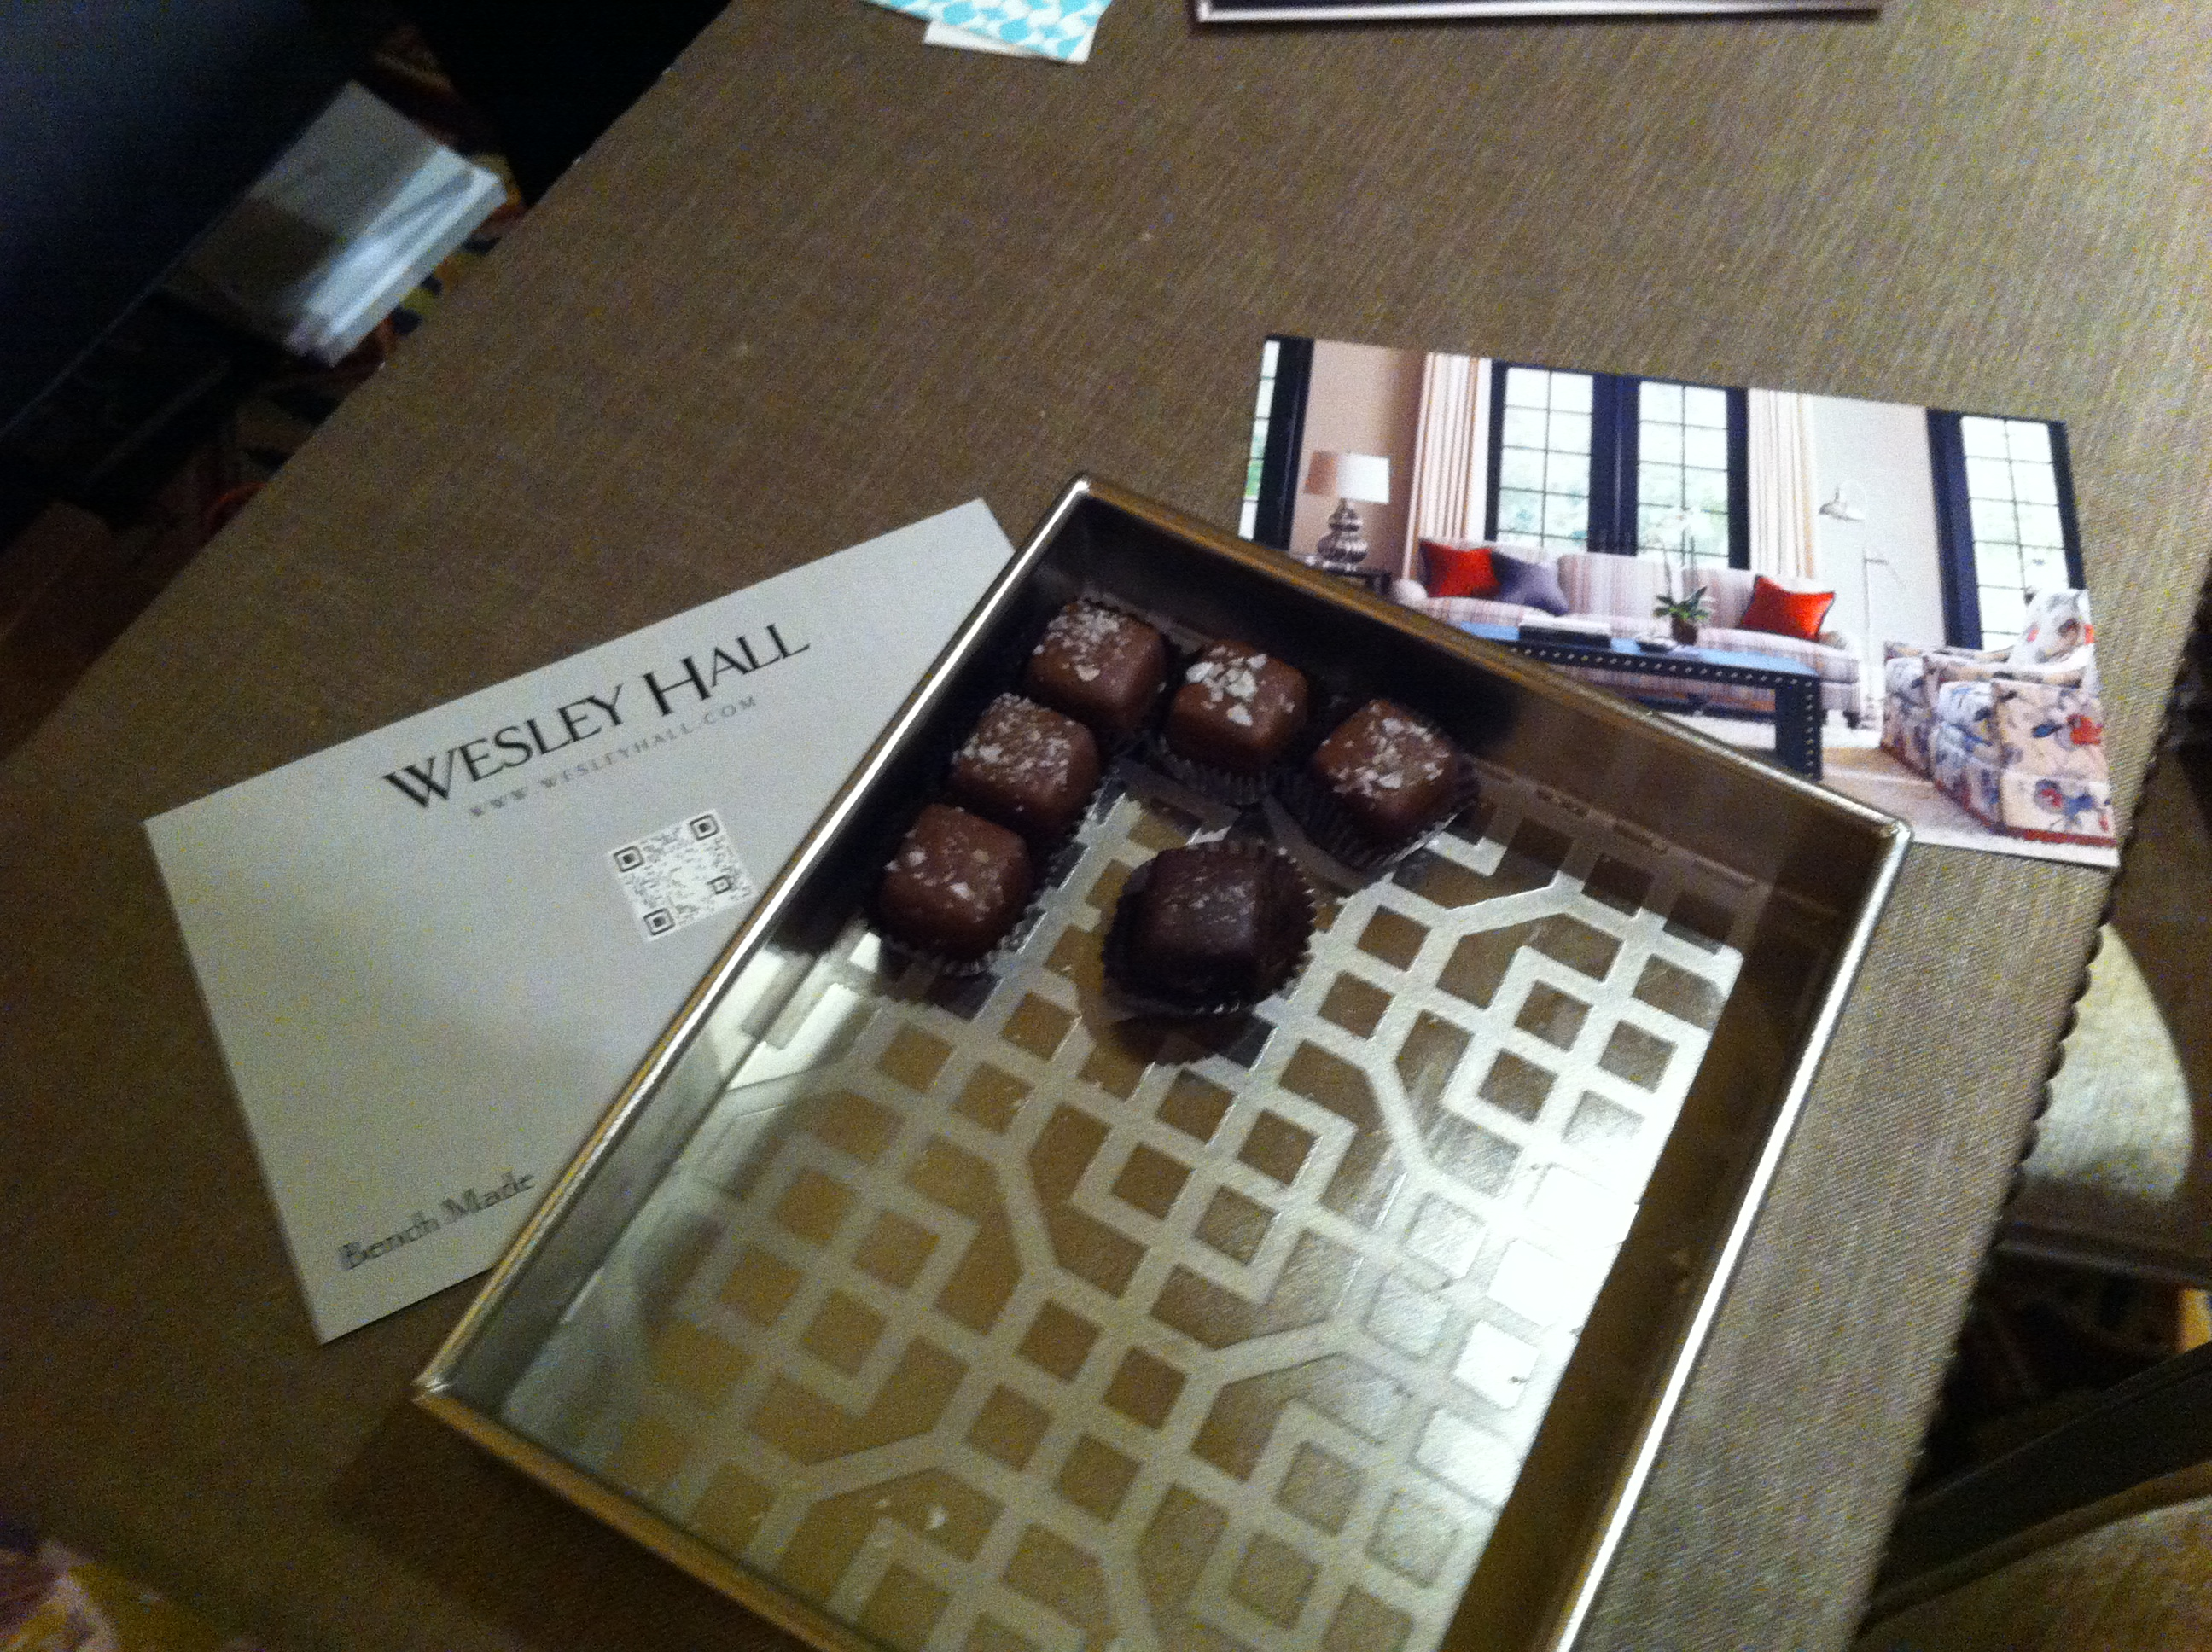 From my friends at Wesley Hall. The most delicious chocolate covered caramels from chocolatefetish.com., from Asheville North Carolina.